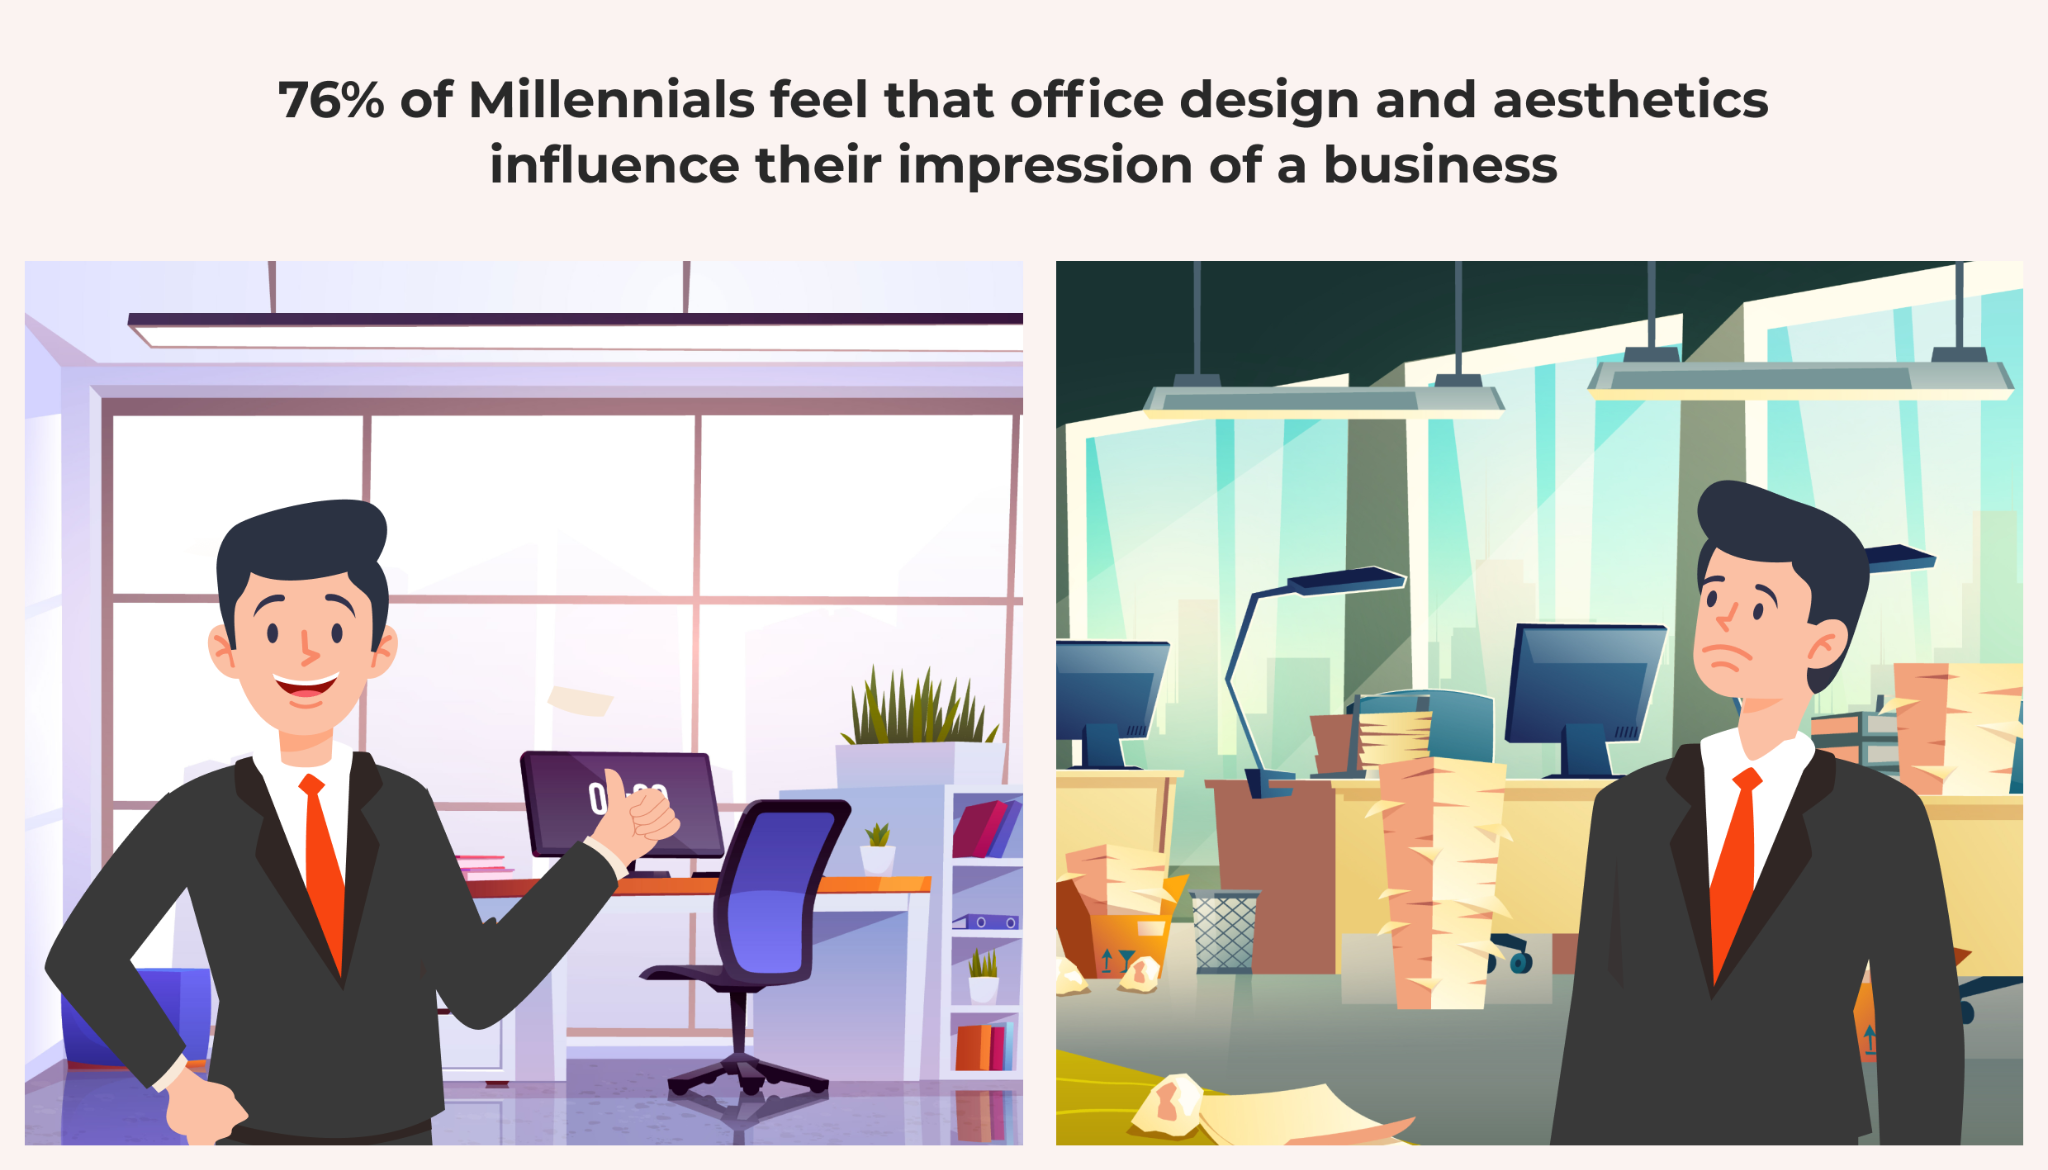 modern office influence impressions